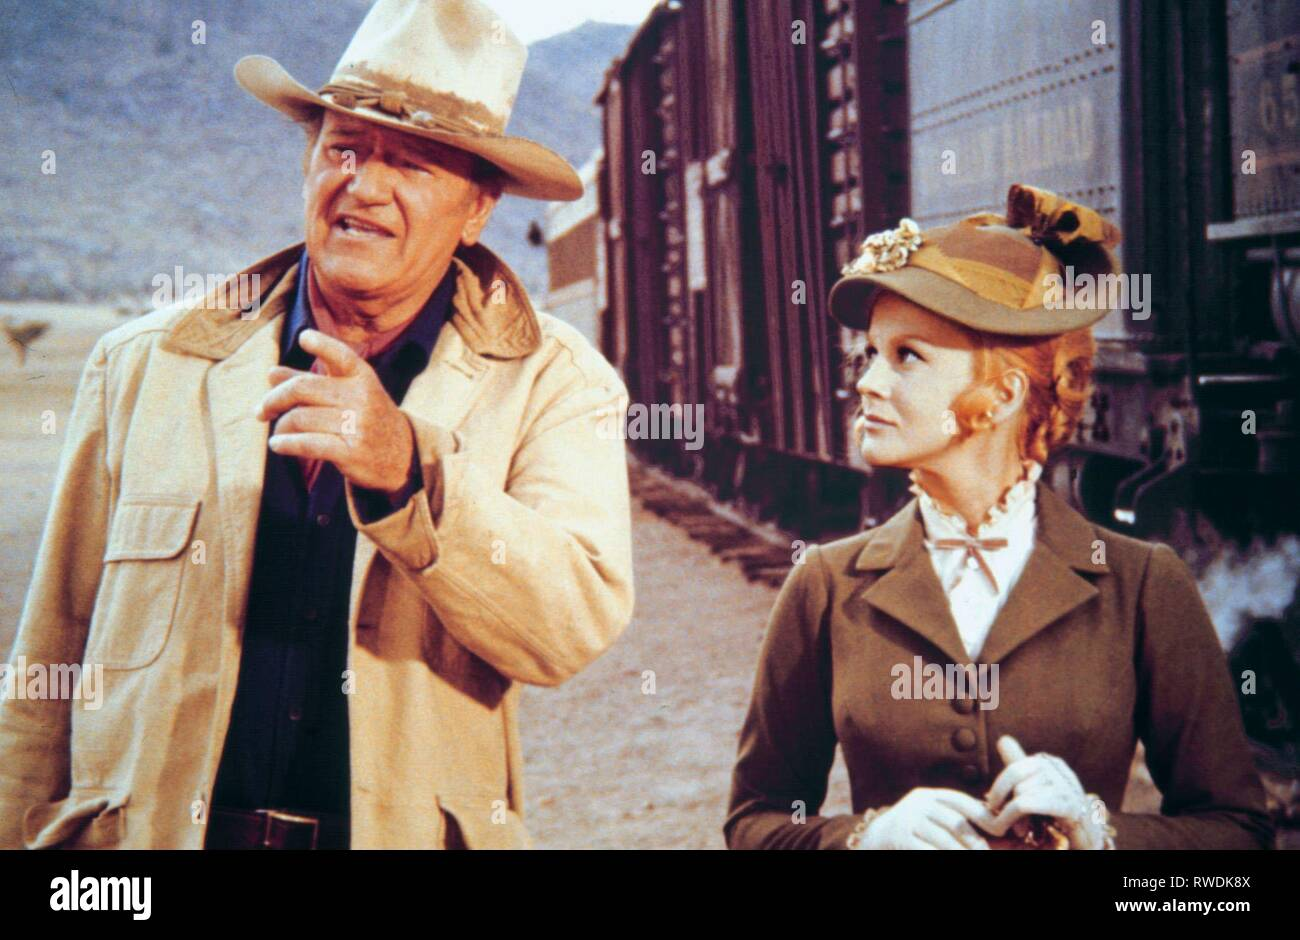 WAYNE,ANN-MARGRET, THE TRAIN ROBBERS, 1973 - Stock Image